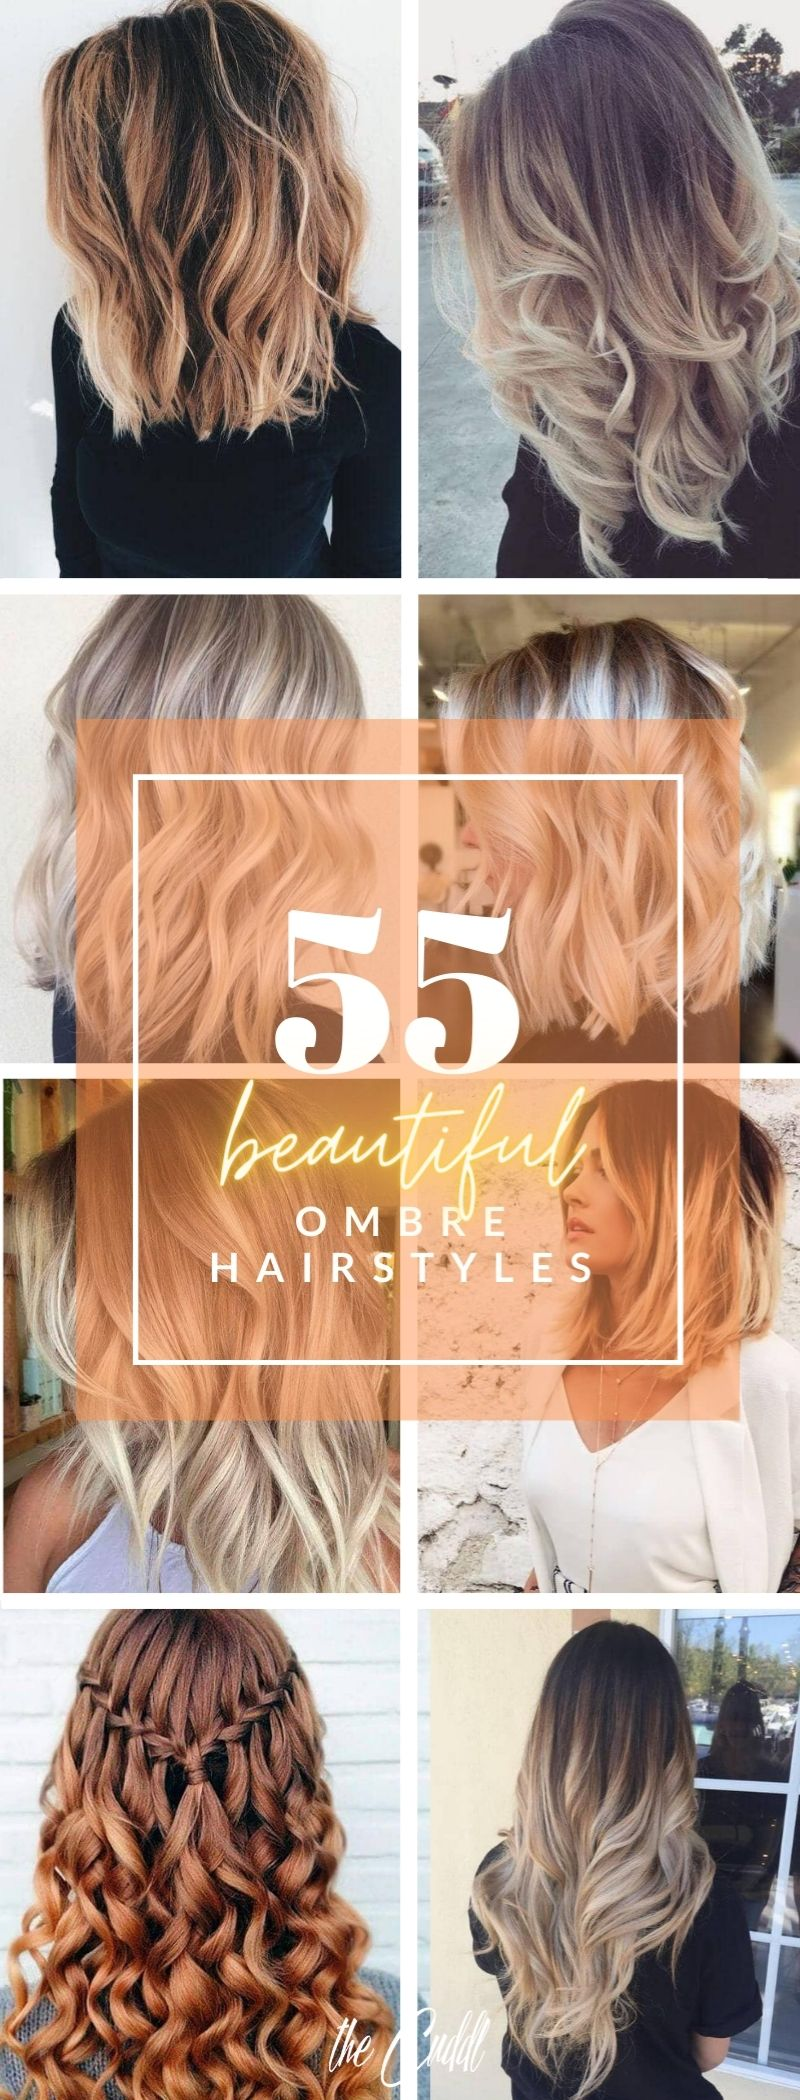 Trendy Ombre Hairstyles Which Make You Look Amazing